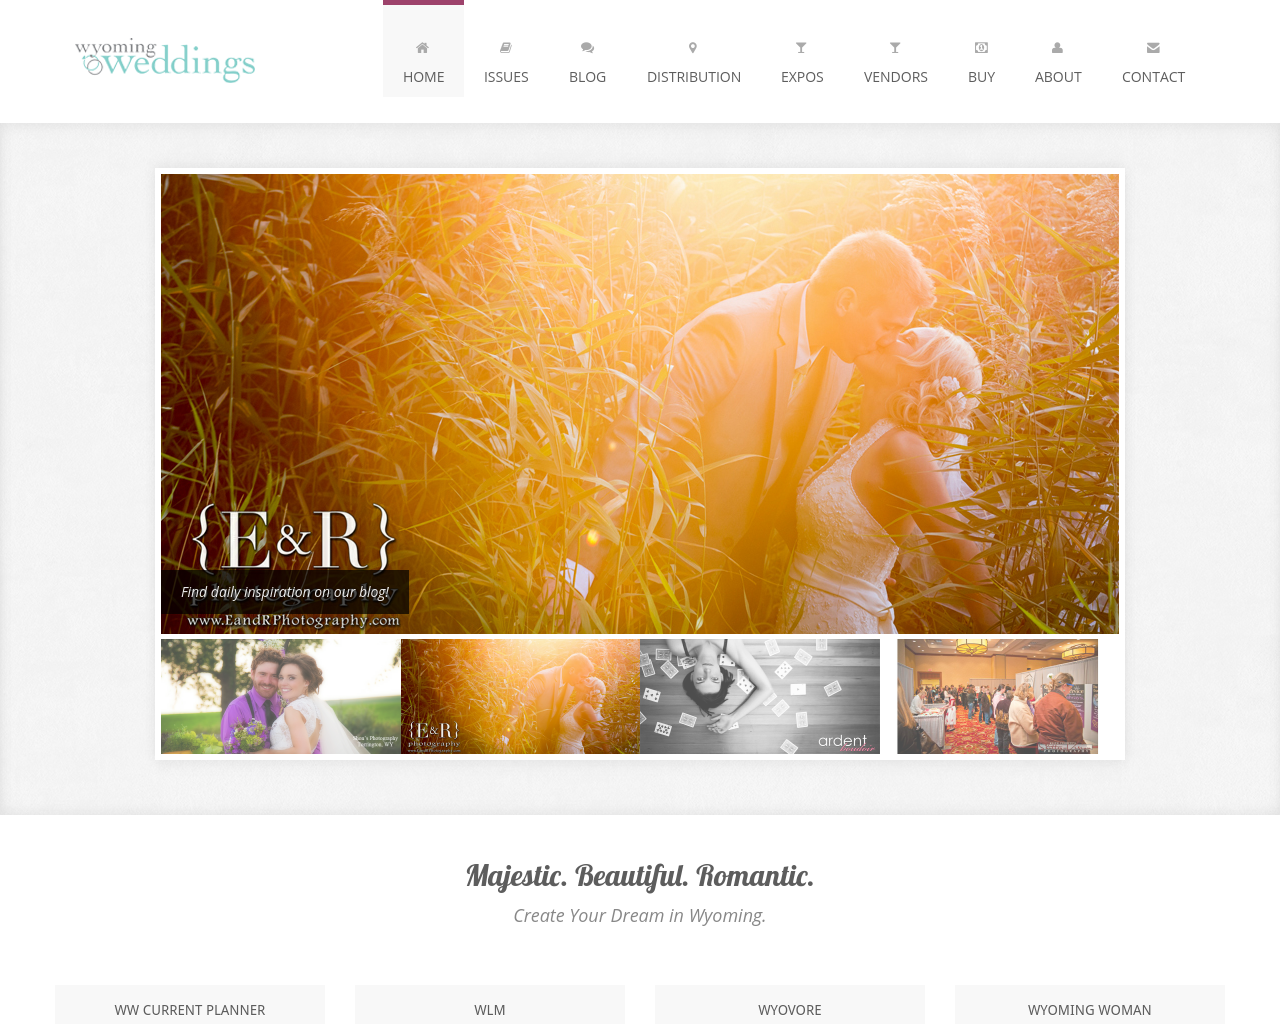 Wyoming-Weddings-Magazine-Advertising-Reviews-Pricing